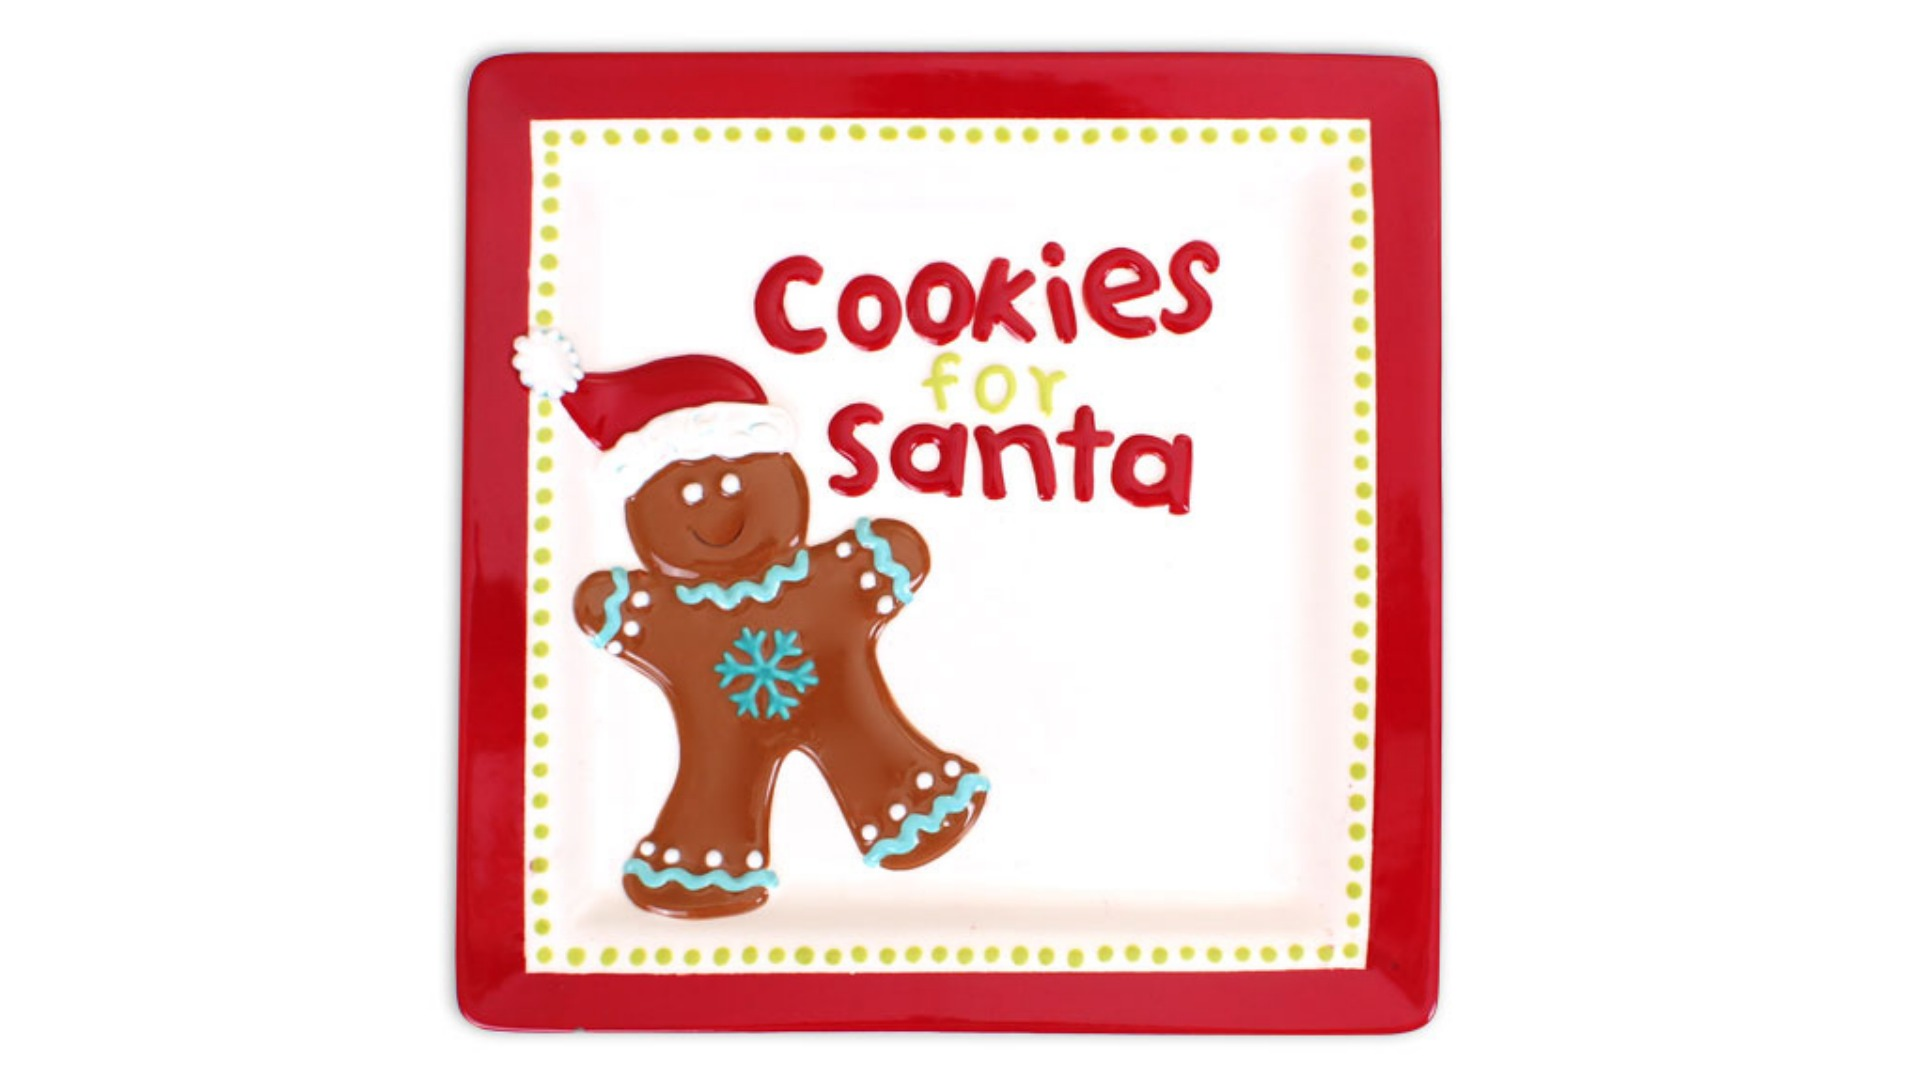 Cookies For Santa Plate Cookie Plate Painting Party 12 9 17